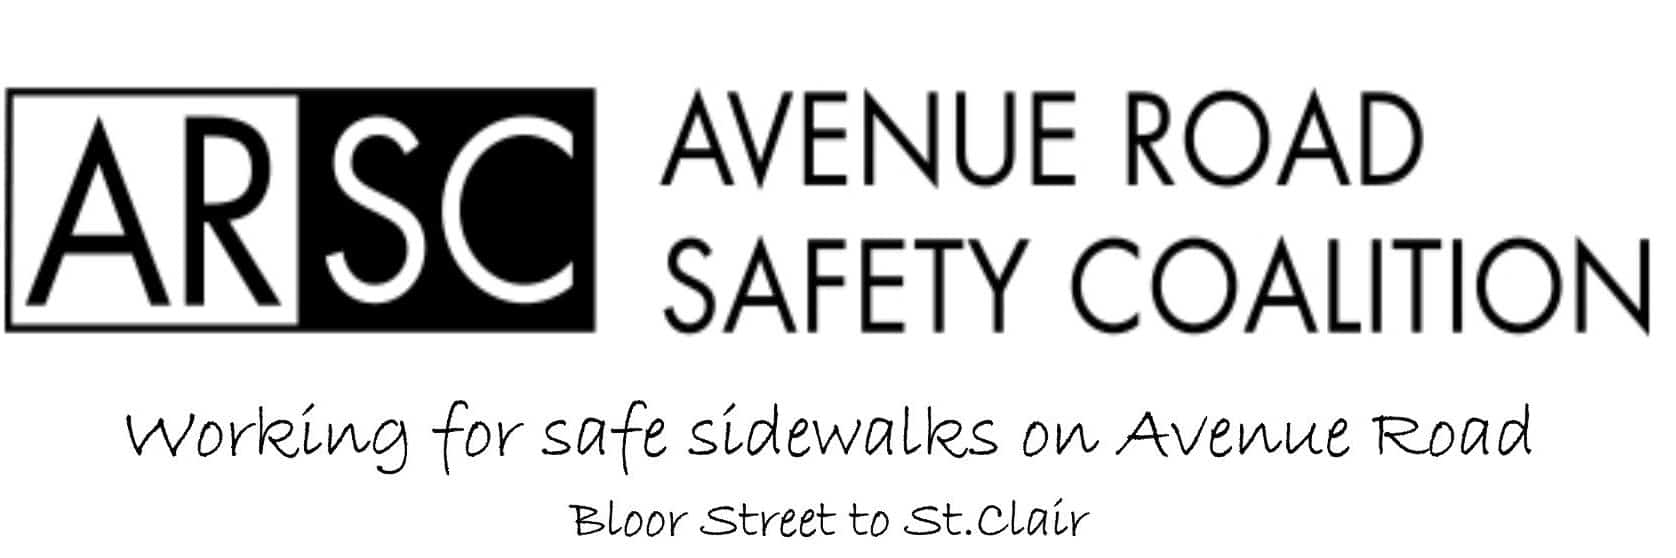 Avenue Road Safety Coalition